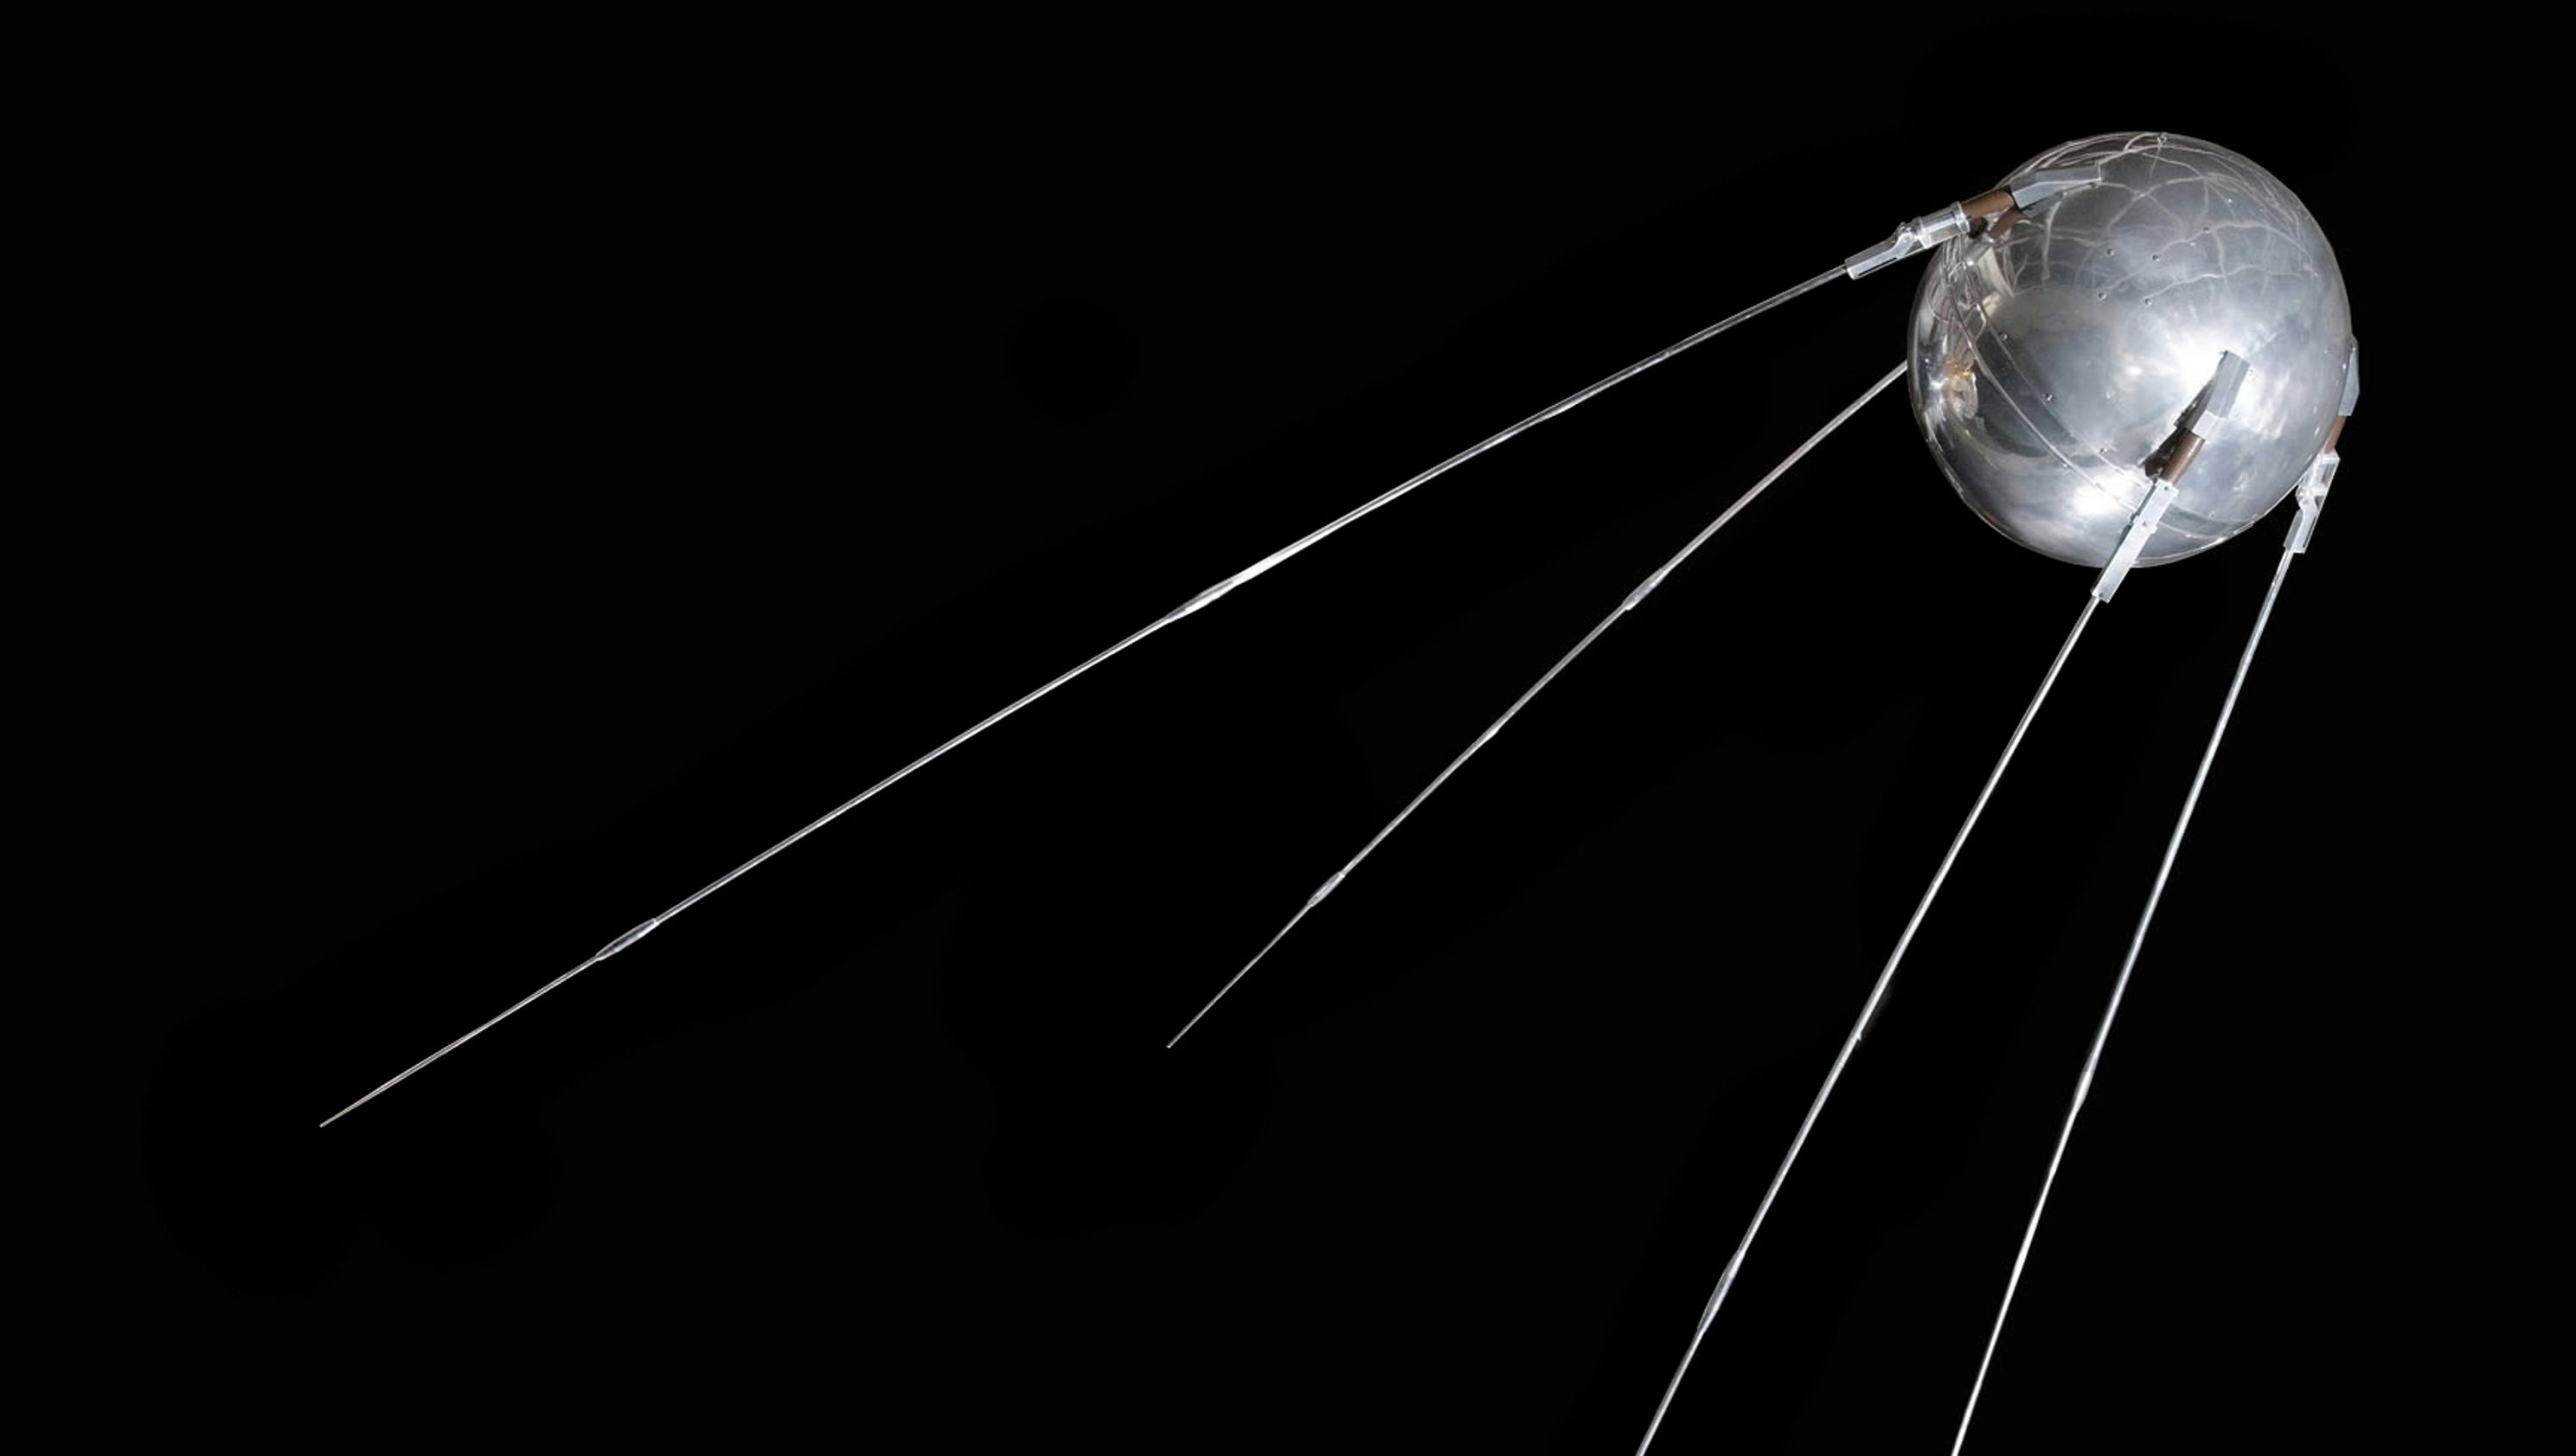 Sputnik First Man Made Satellite Launched 60 Years Ago Today